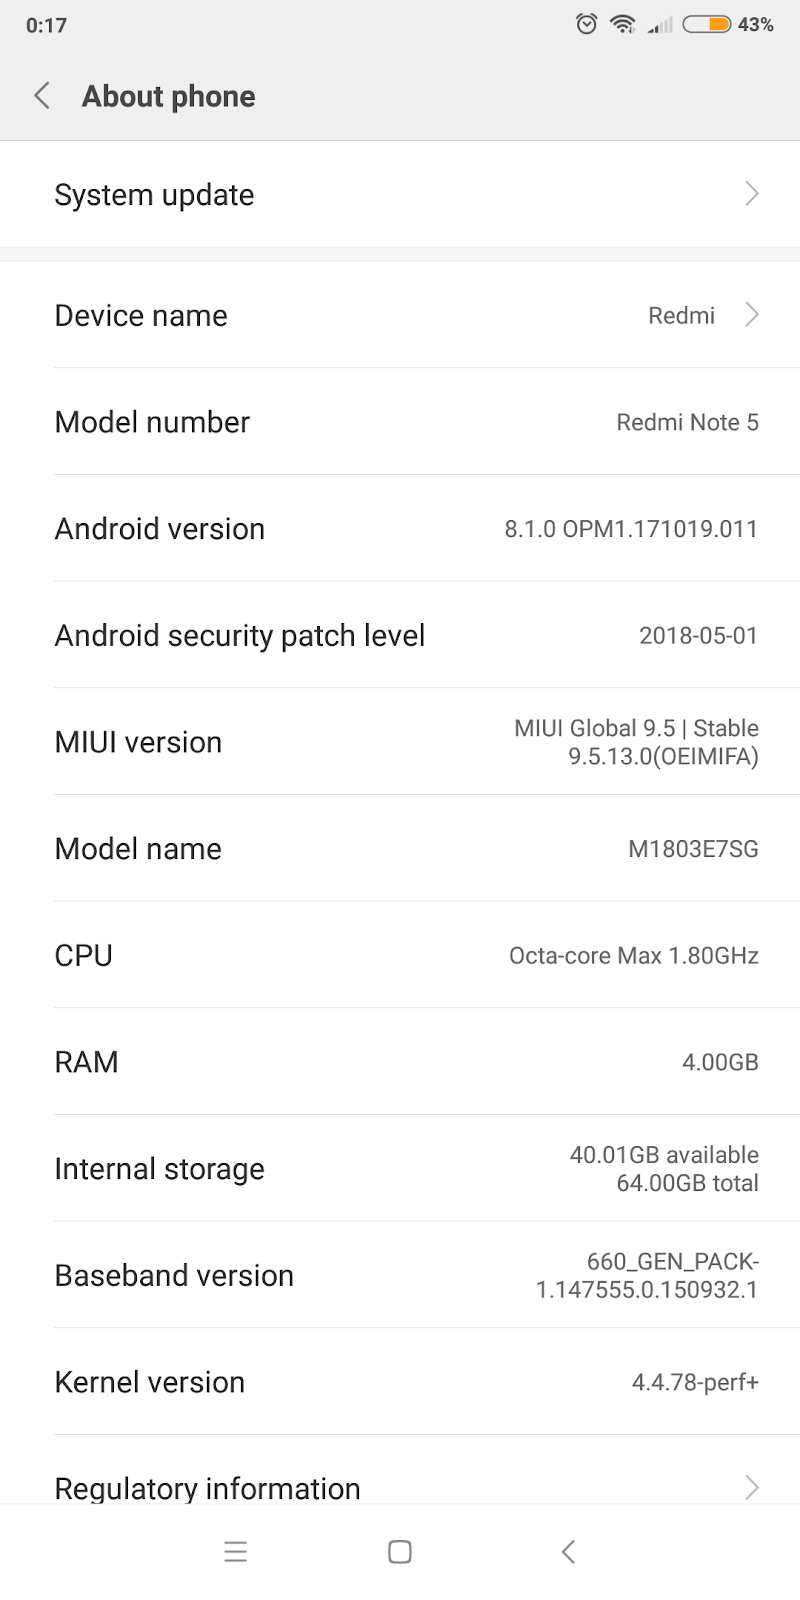 Gadgets and stuff: First Update V9 5 13 0 OEIMIFA is